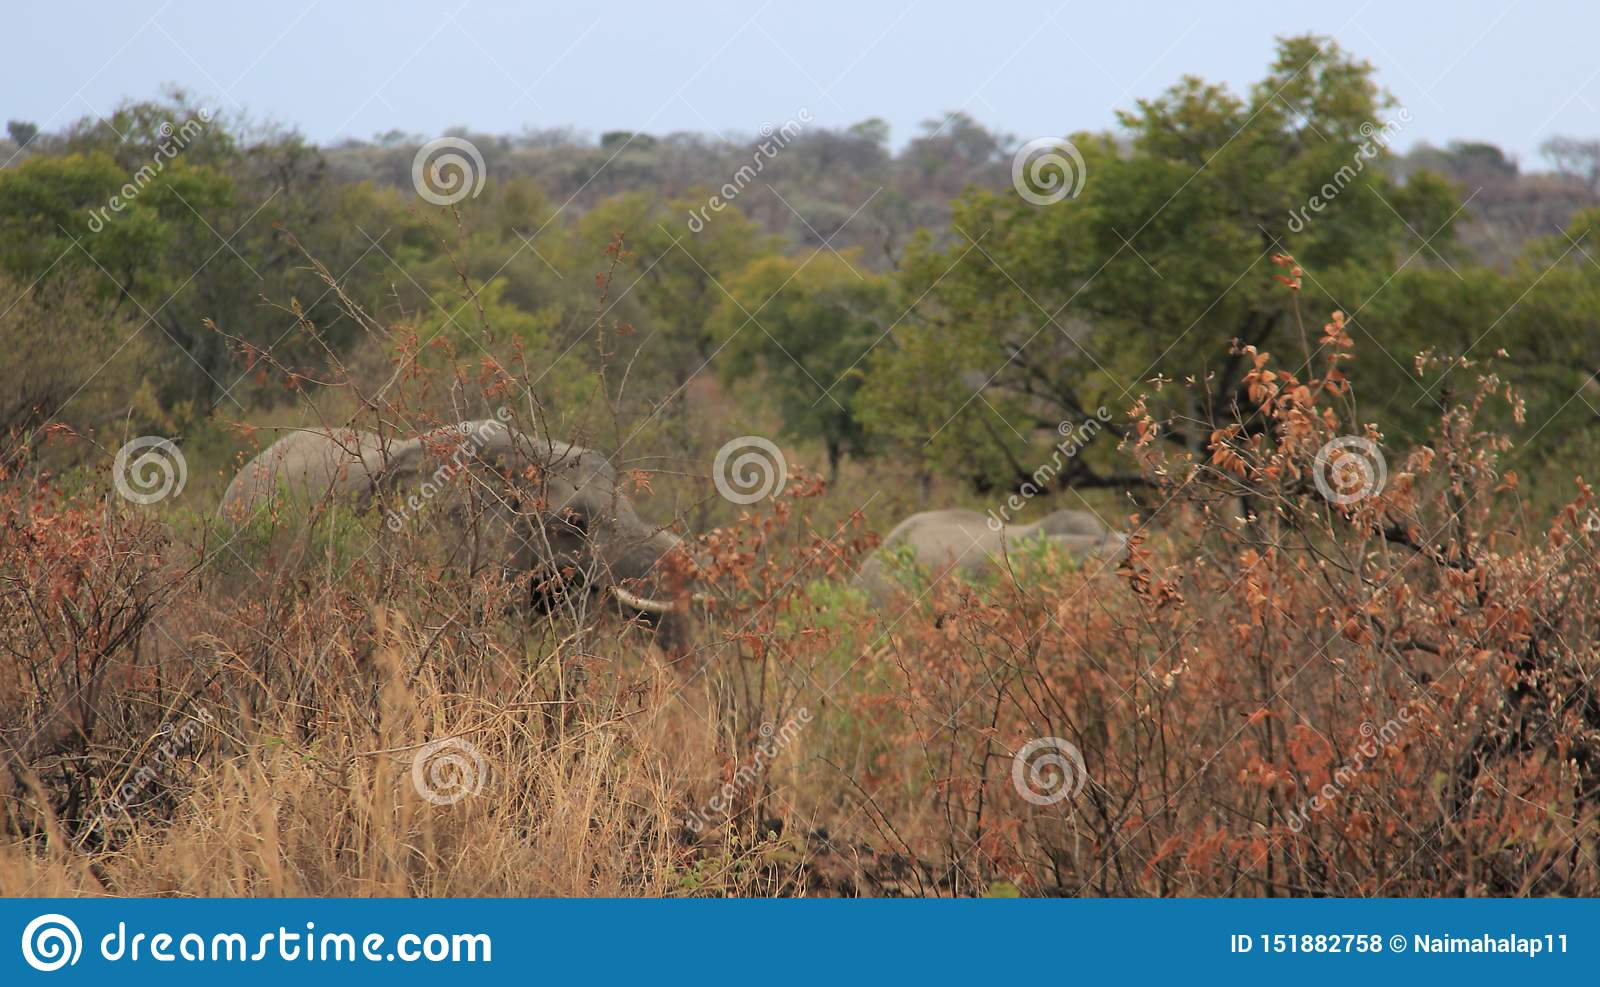 Forest And Long Tusk Africa Wild Elephants